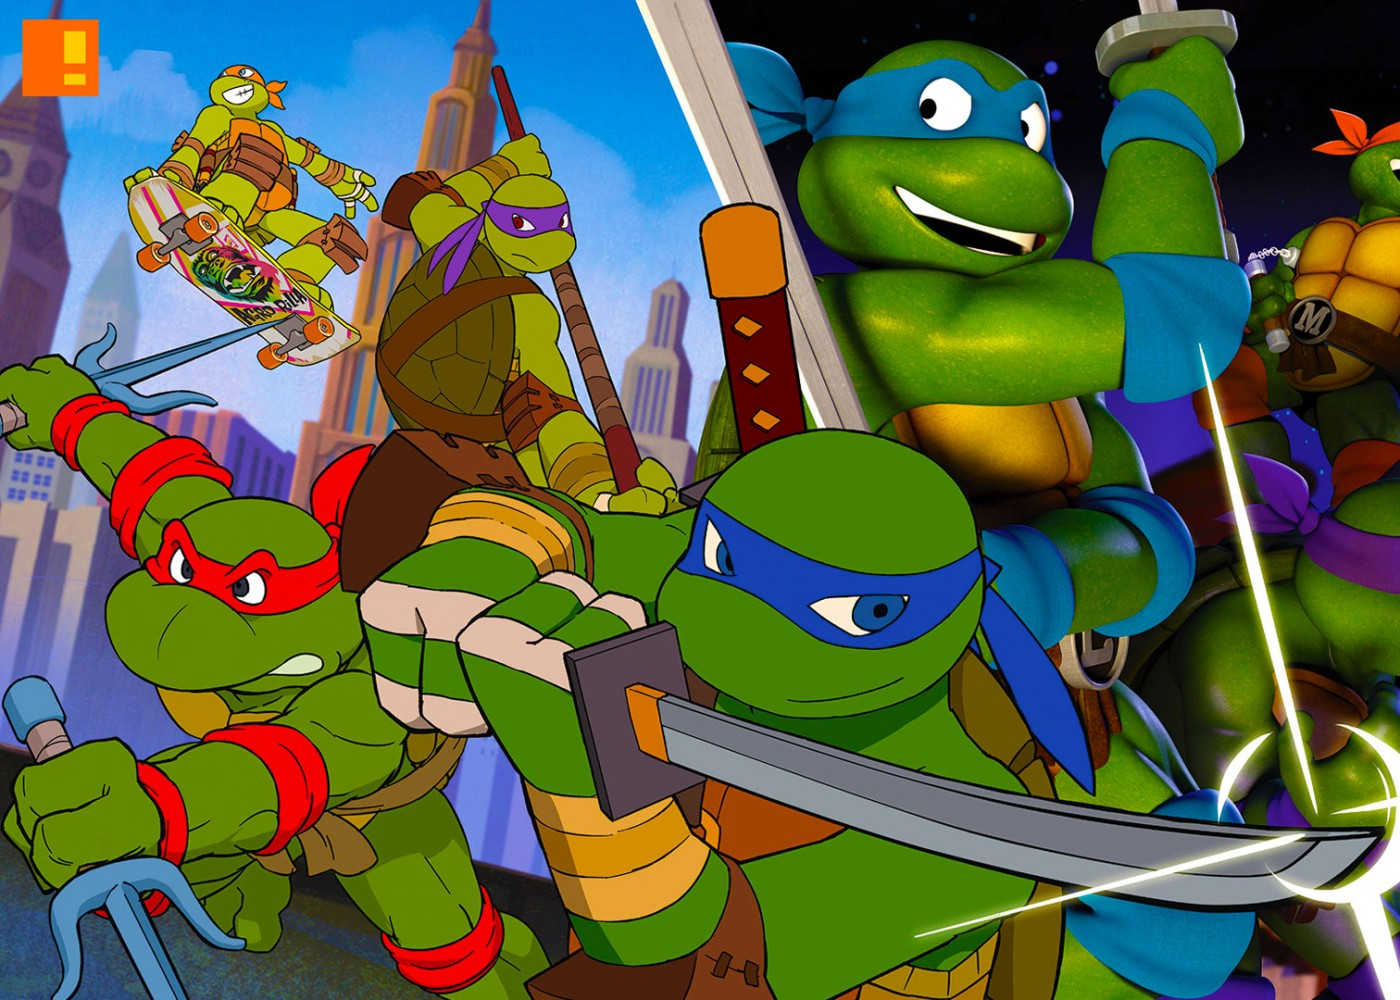 tmnt. 80's crossover. nickelodeon. the action pixel. @theactionpixel